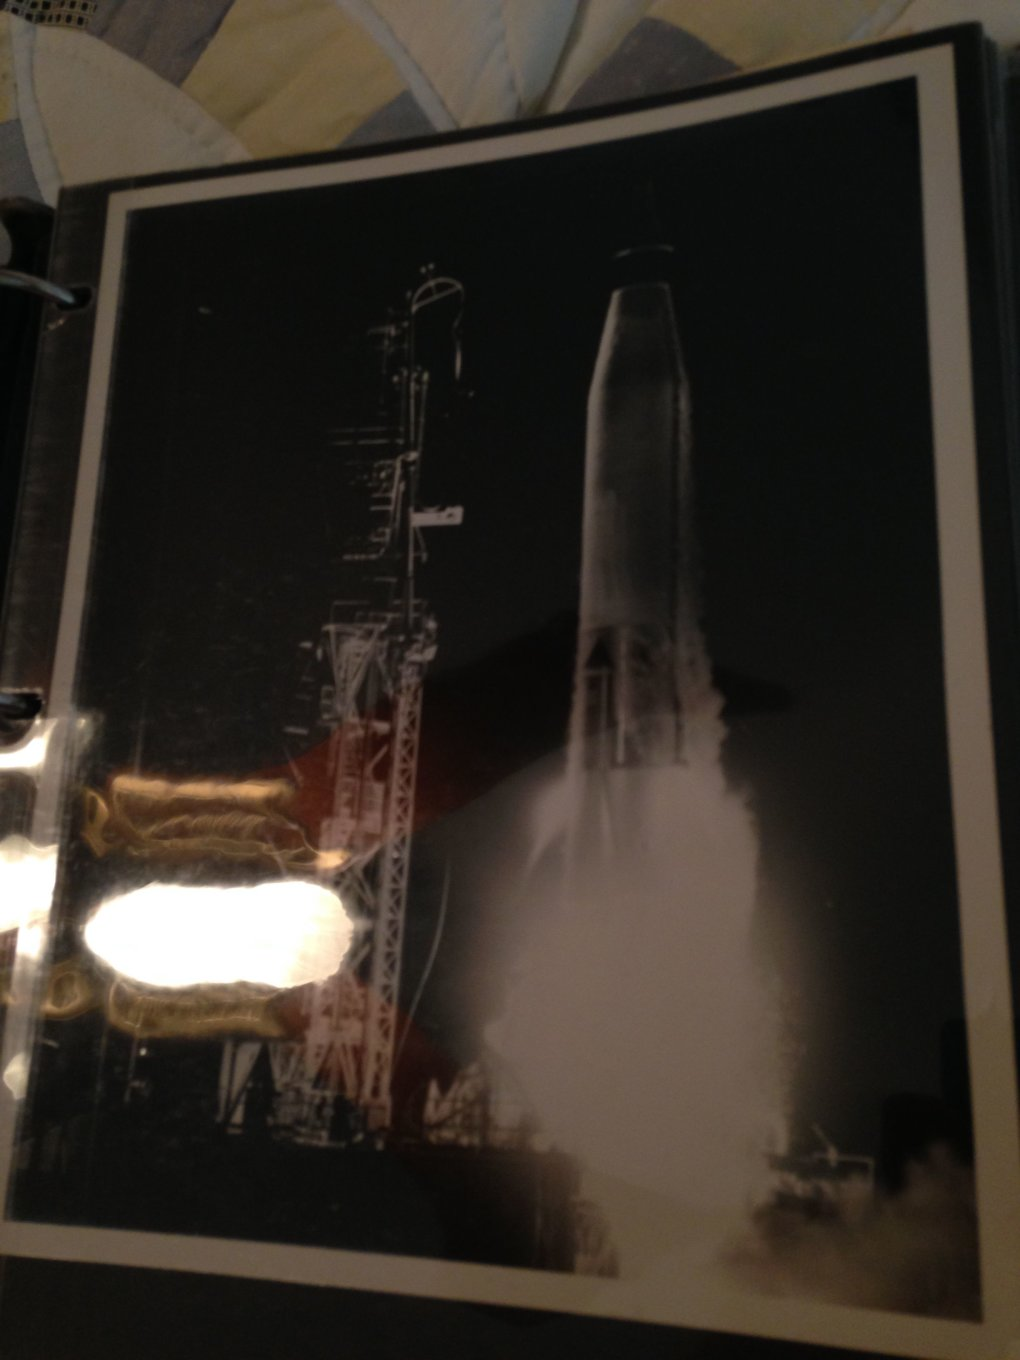 17 yk1vzum - guy went through his grandfathers stuff and stumbled upon a binder with all of his nasa stuff